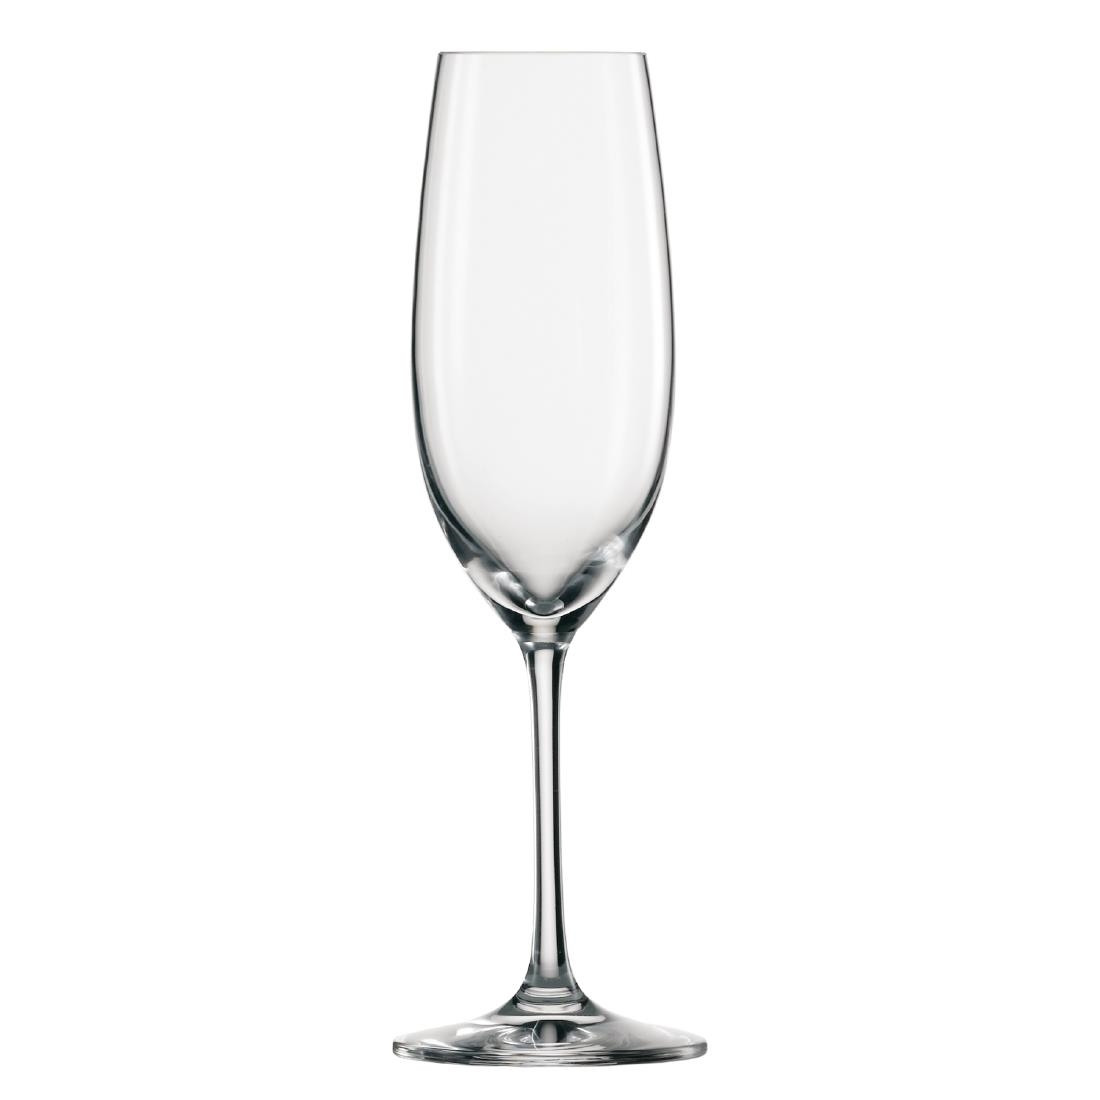 Schott Zwiesel Ivento Champagne flute 230ml (Pack of 6) Pack of 6 Image